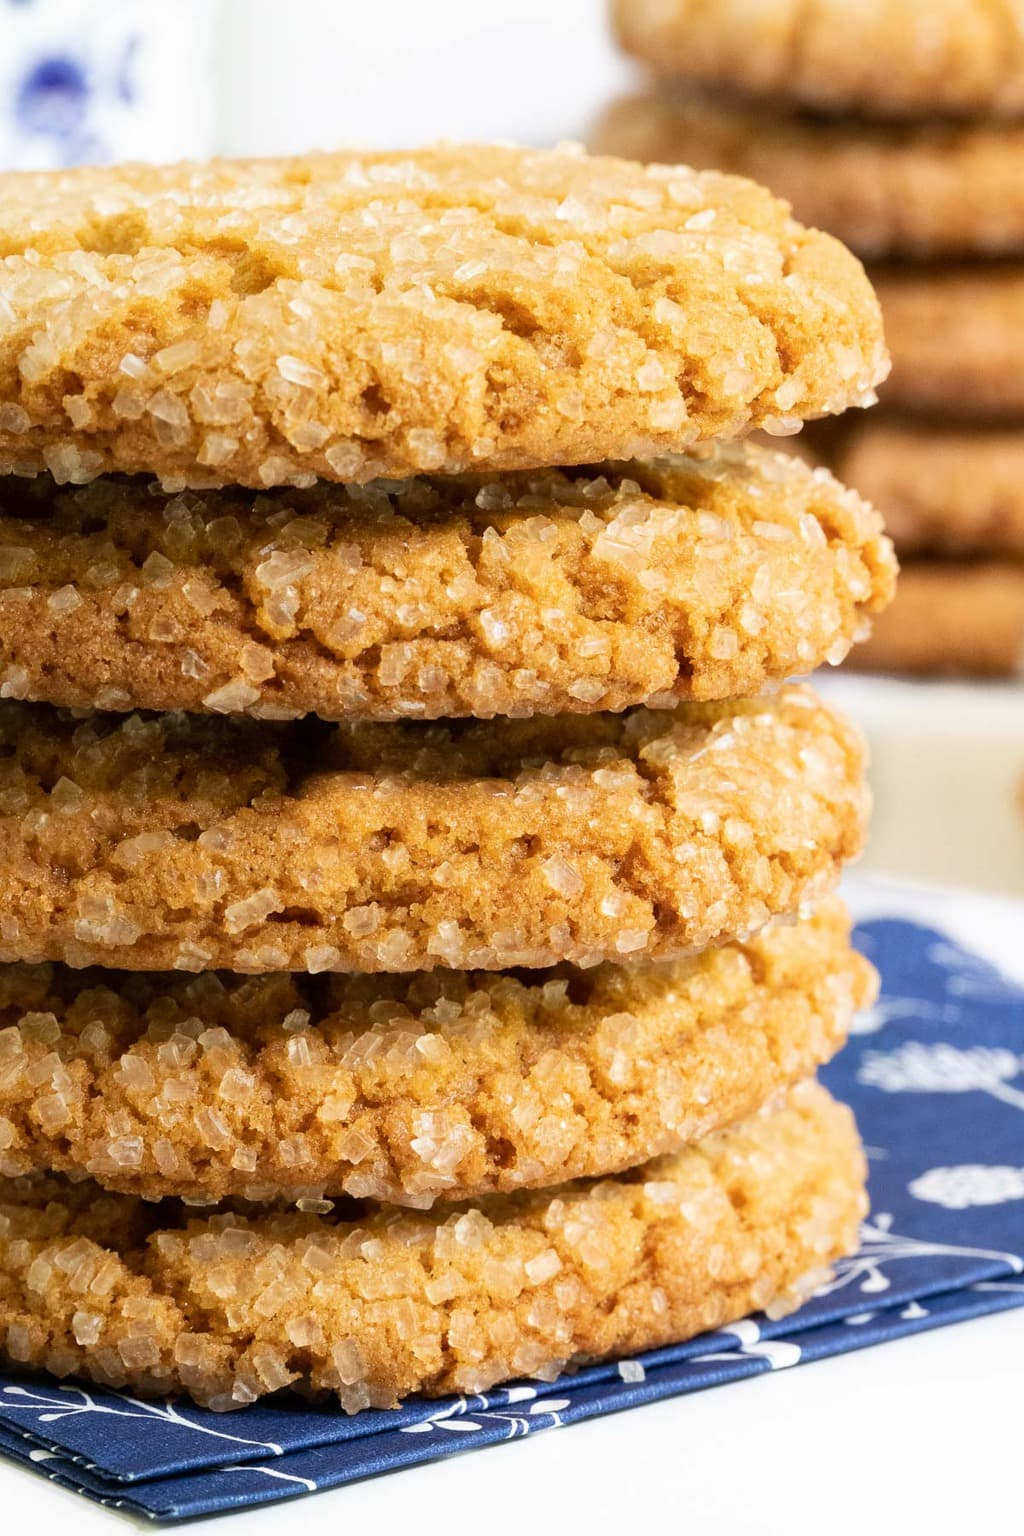 Vertical extreme closeup photo of a stack of Crinkly Crackly Peanut Butter Cookies on a navy and white patterned napkin.